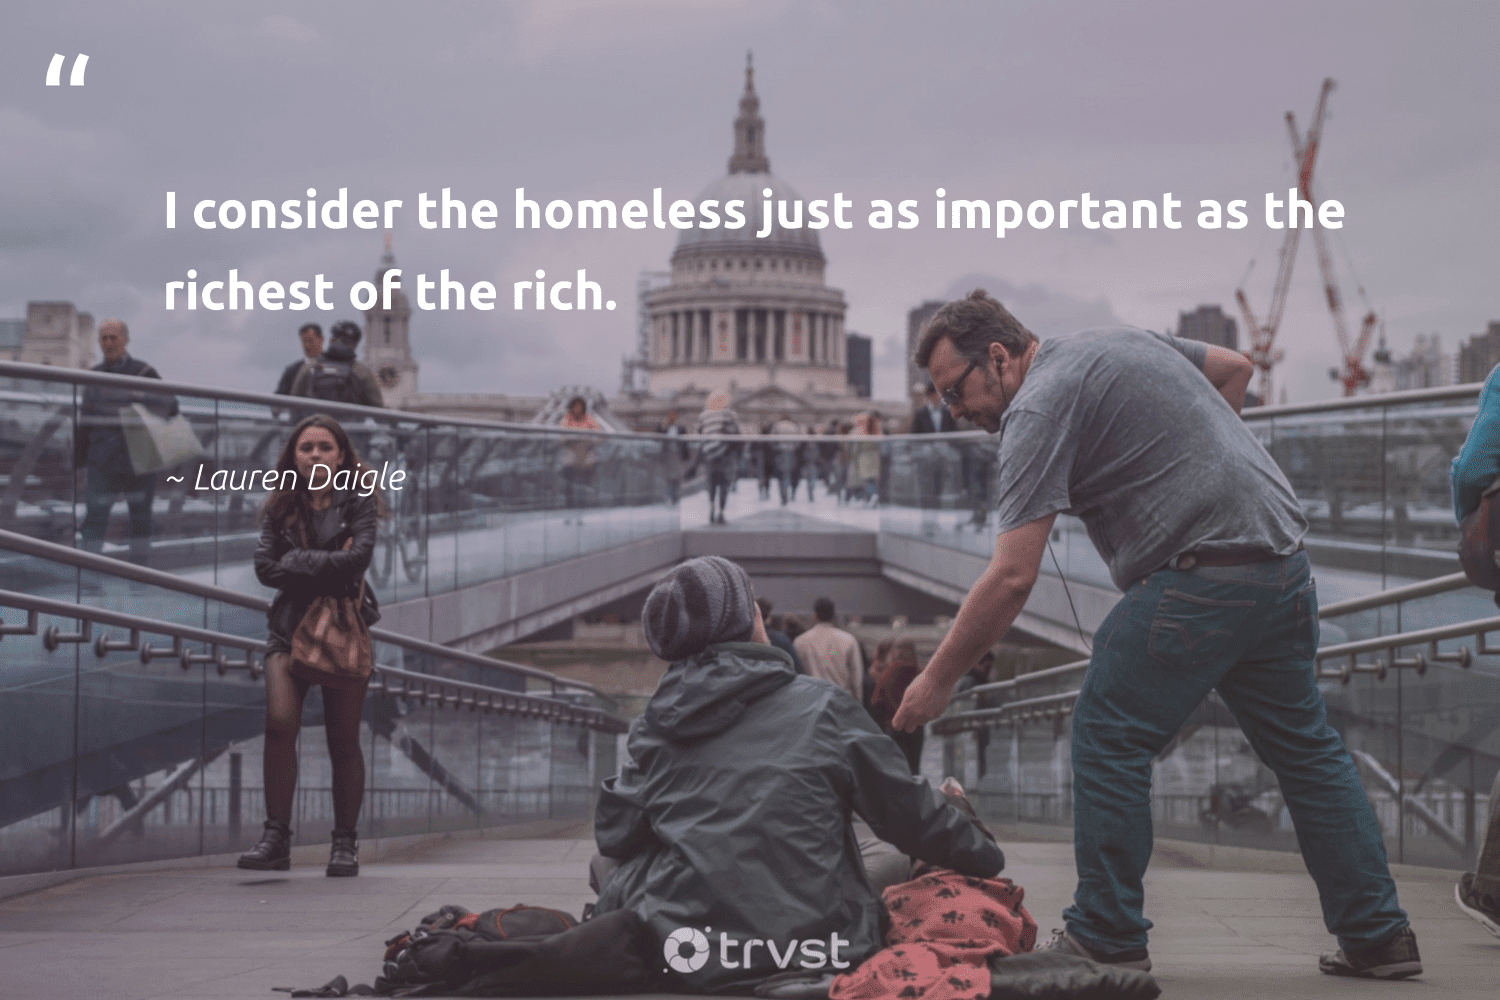 """""""I consider the homeless just as important as the richest of the rich.""""  - Lauren Daigle #trvst #quotes #homelessness #homeless #weareallone #inclusion #gogreen #equalopportunity #sustainablefutures #planetearthfirst #makeadifference #equalrights"""